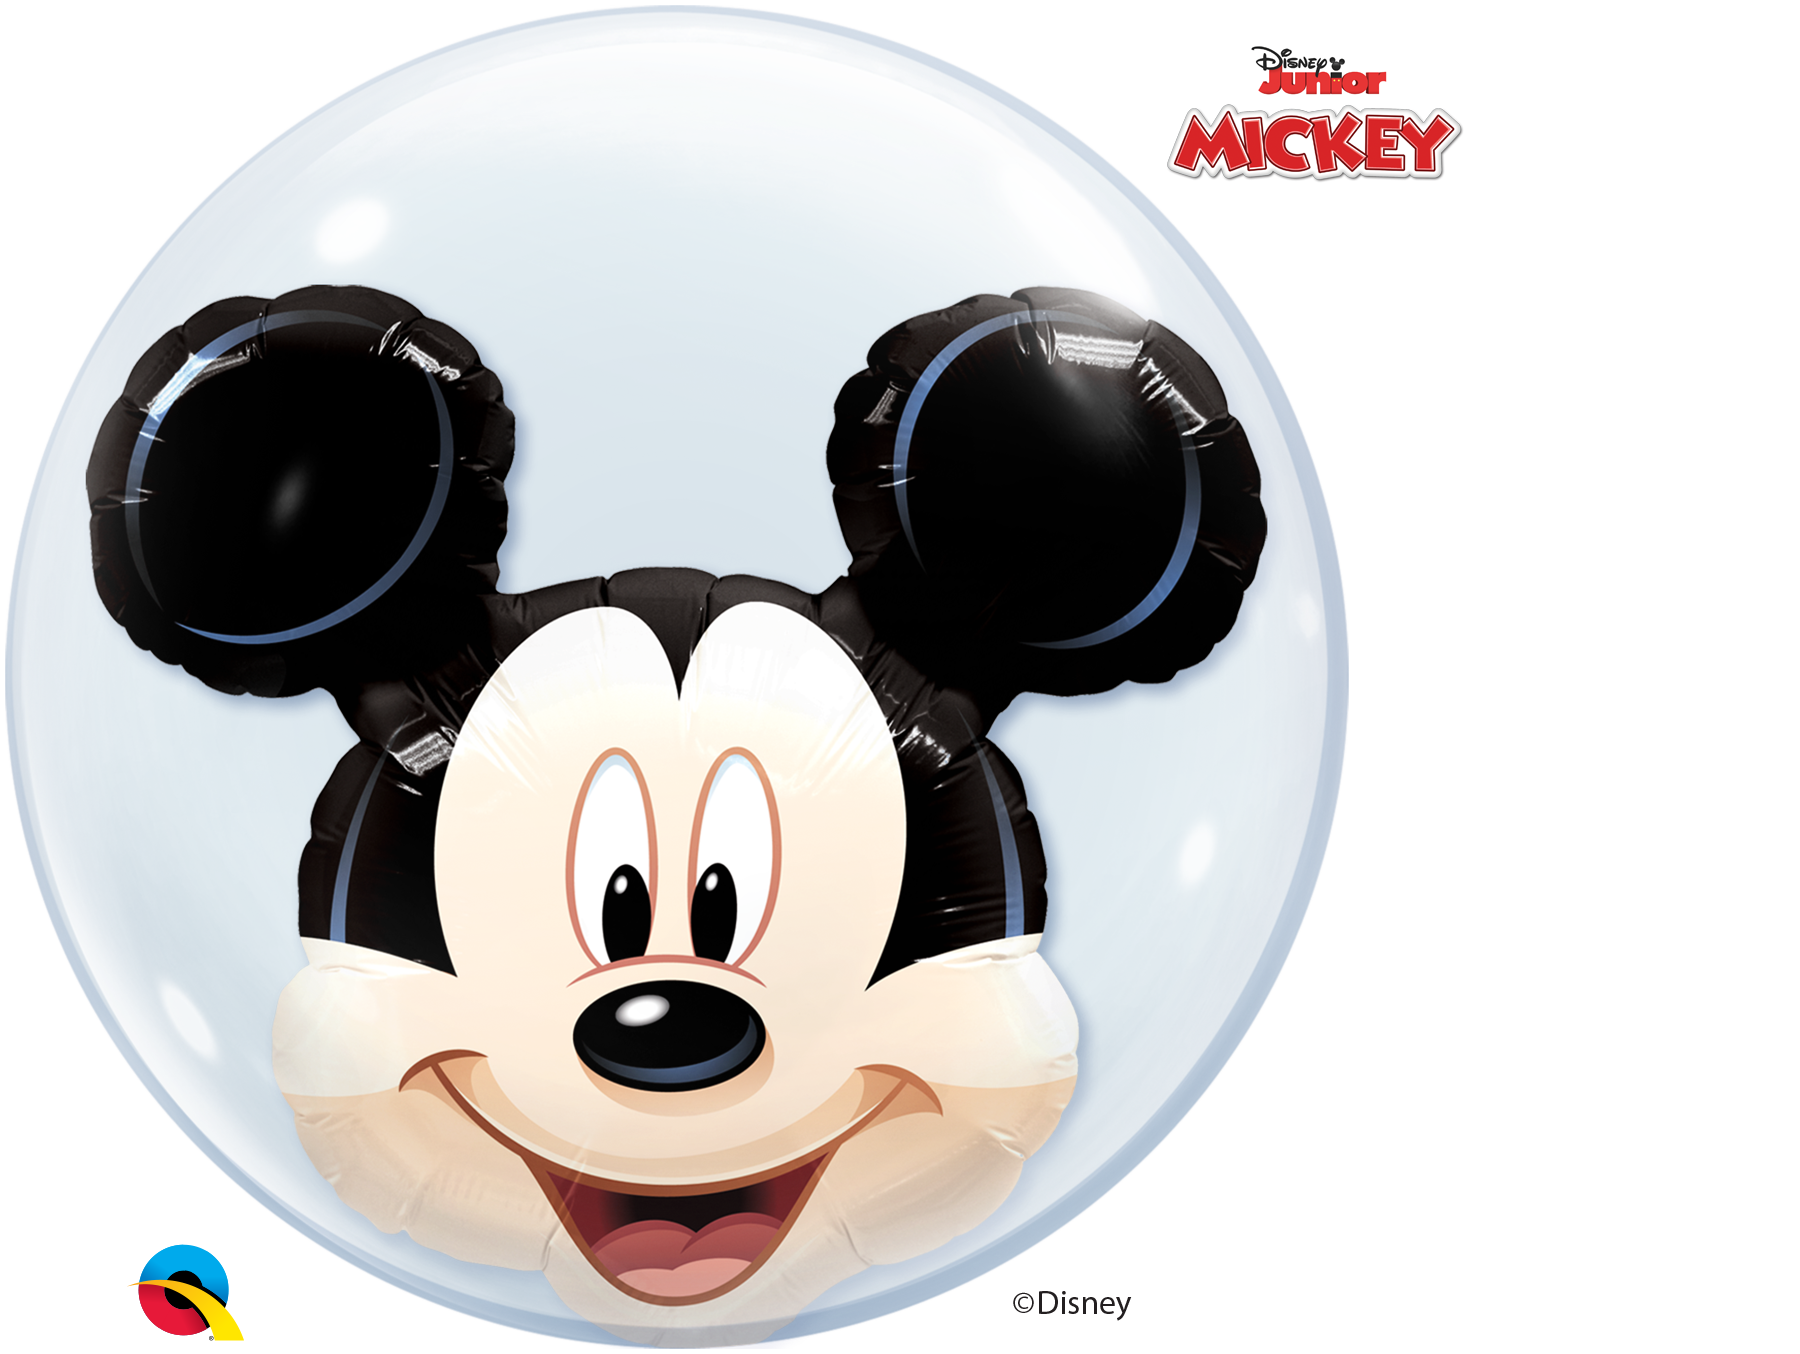 Disney Mickey Mouse 24 inch Double Bubble